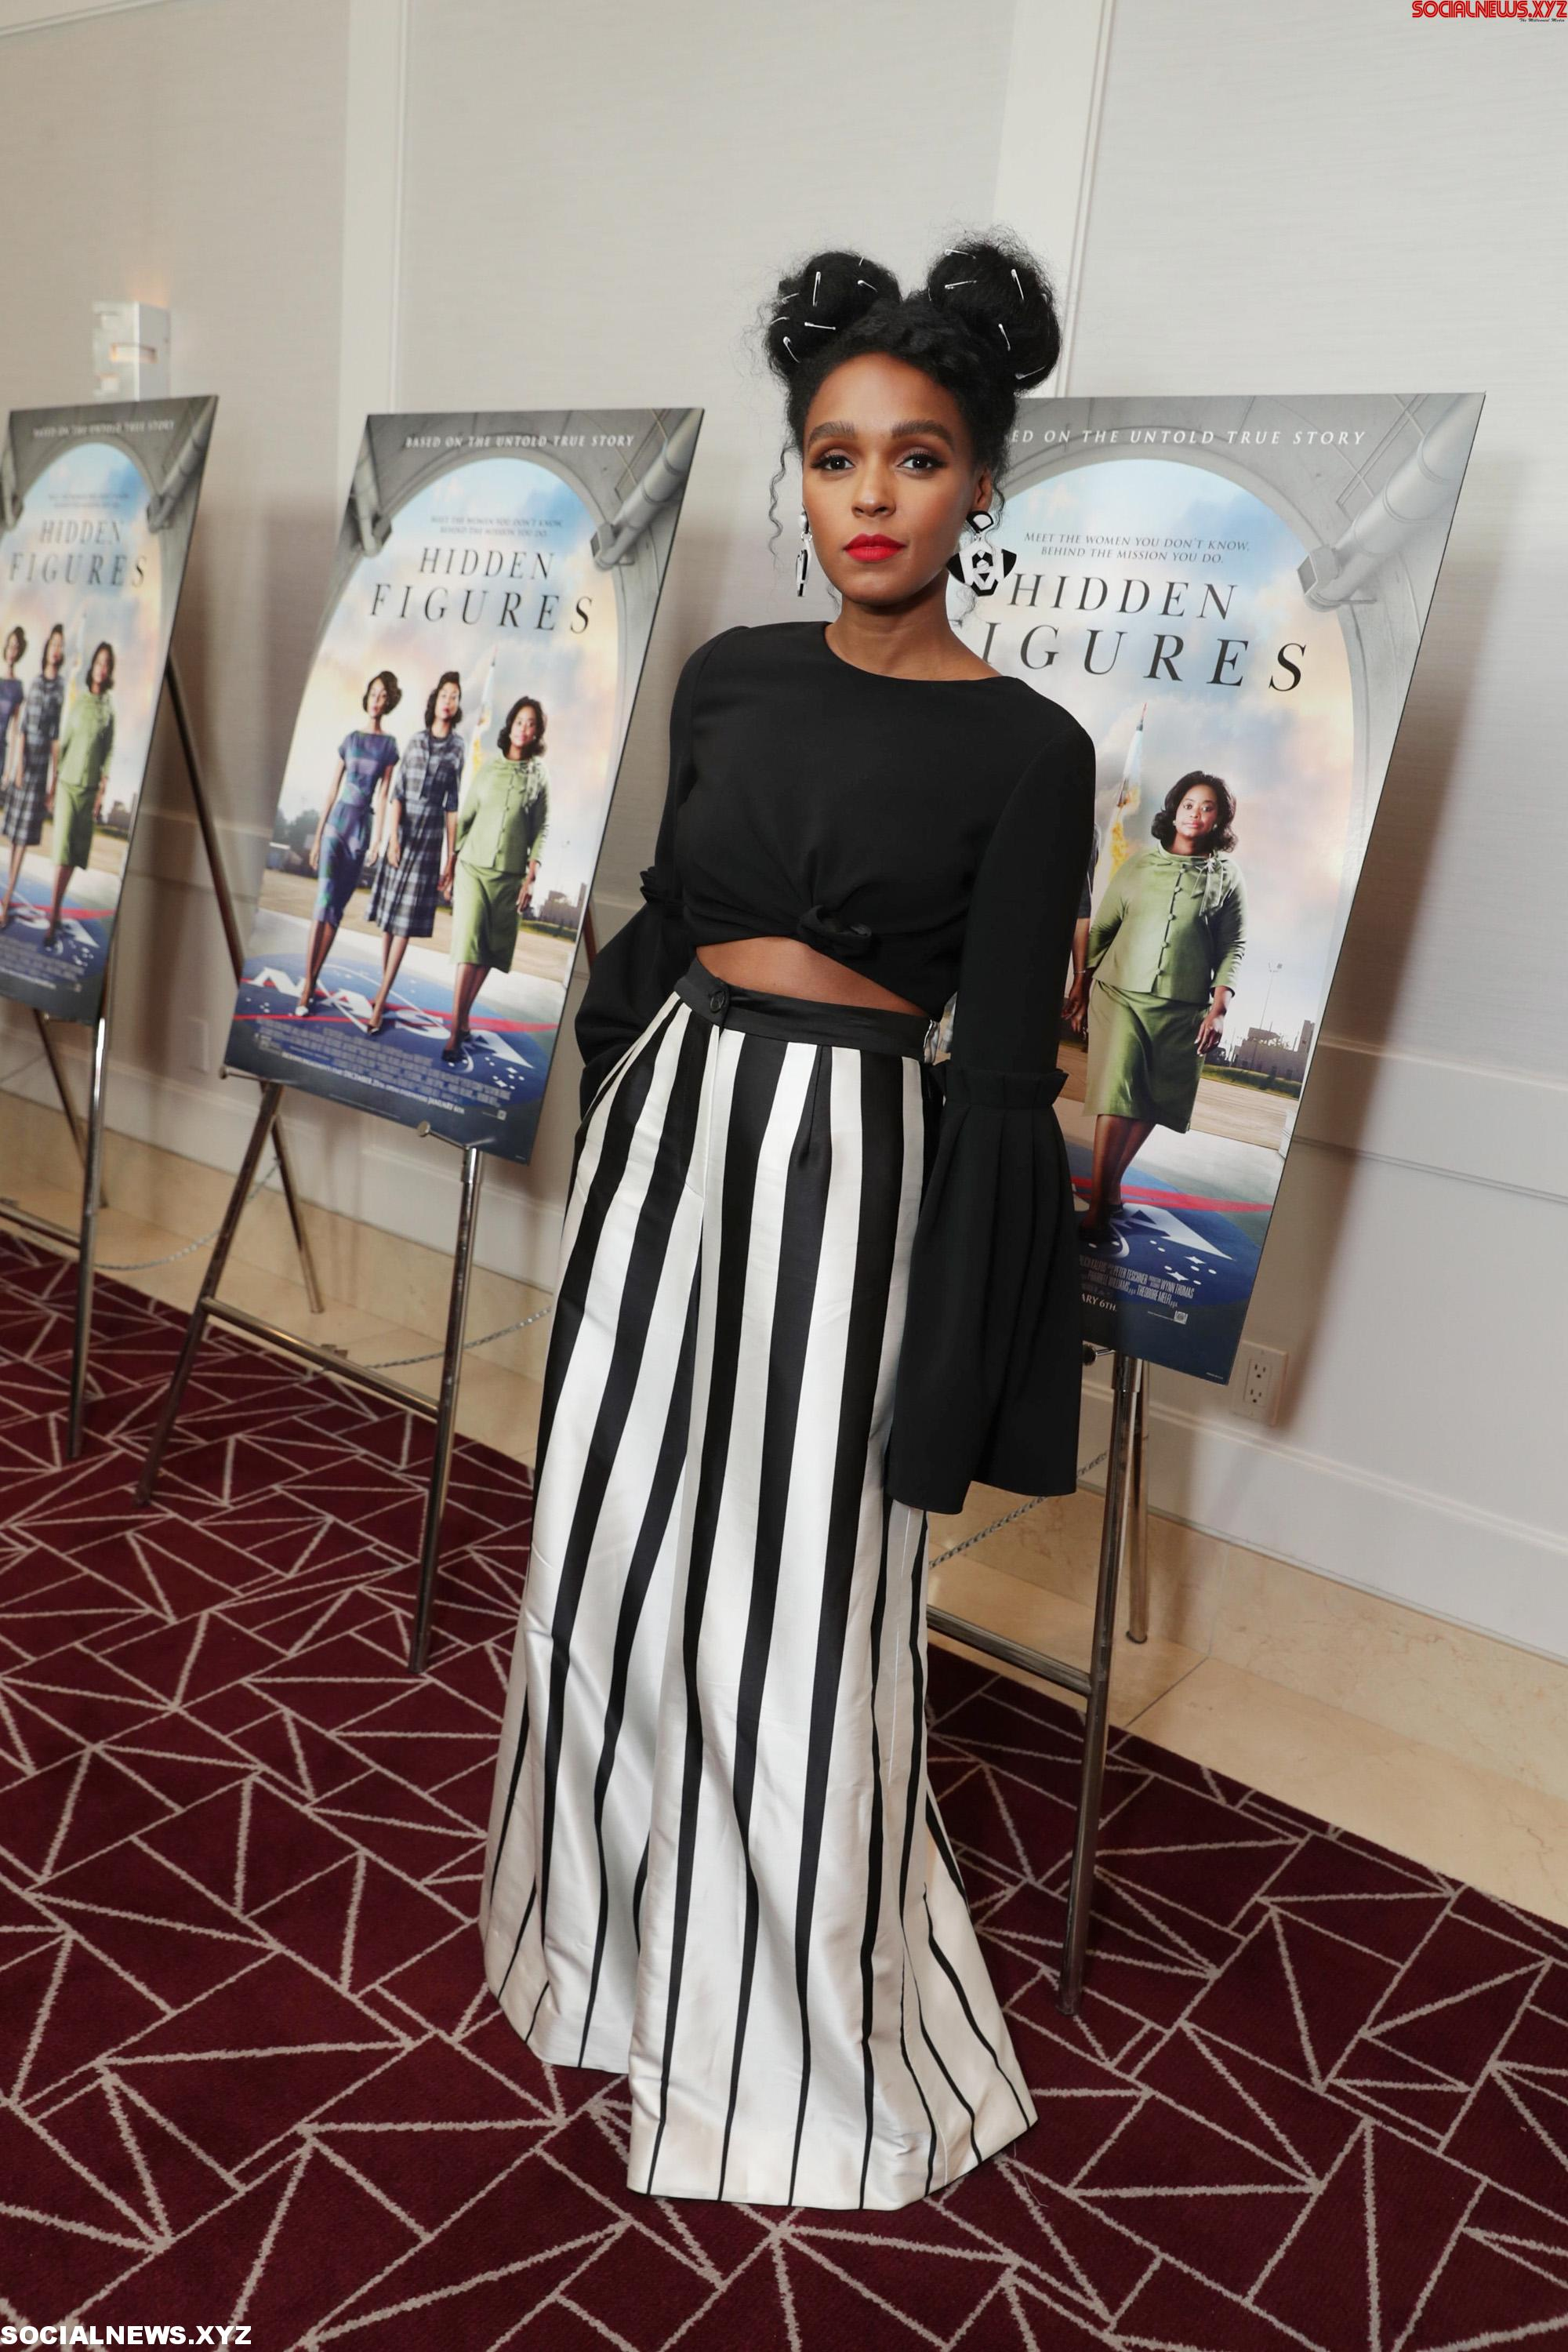 Hidden Figures Special Screening Gallery